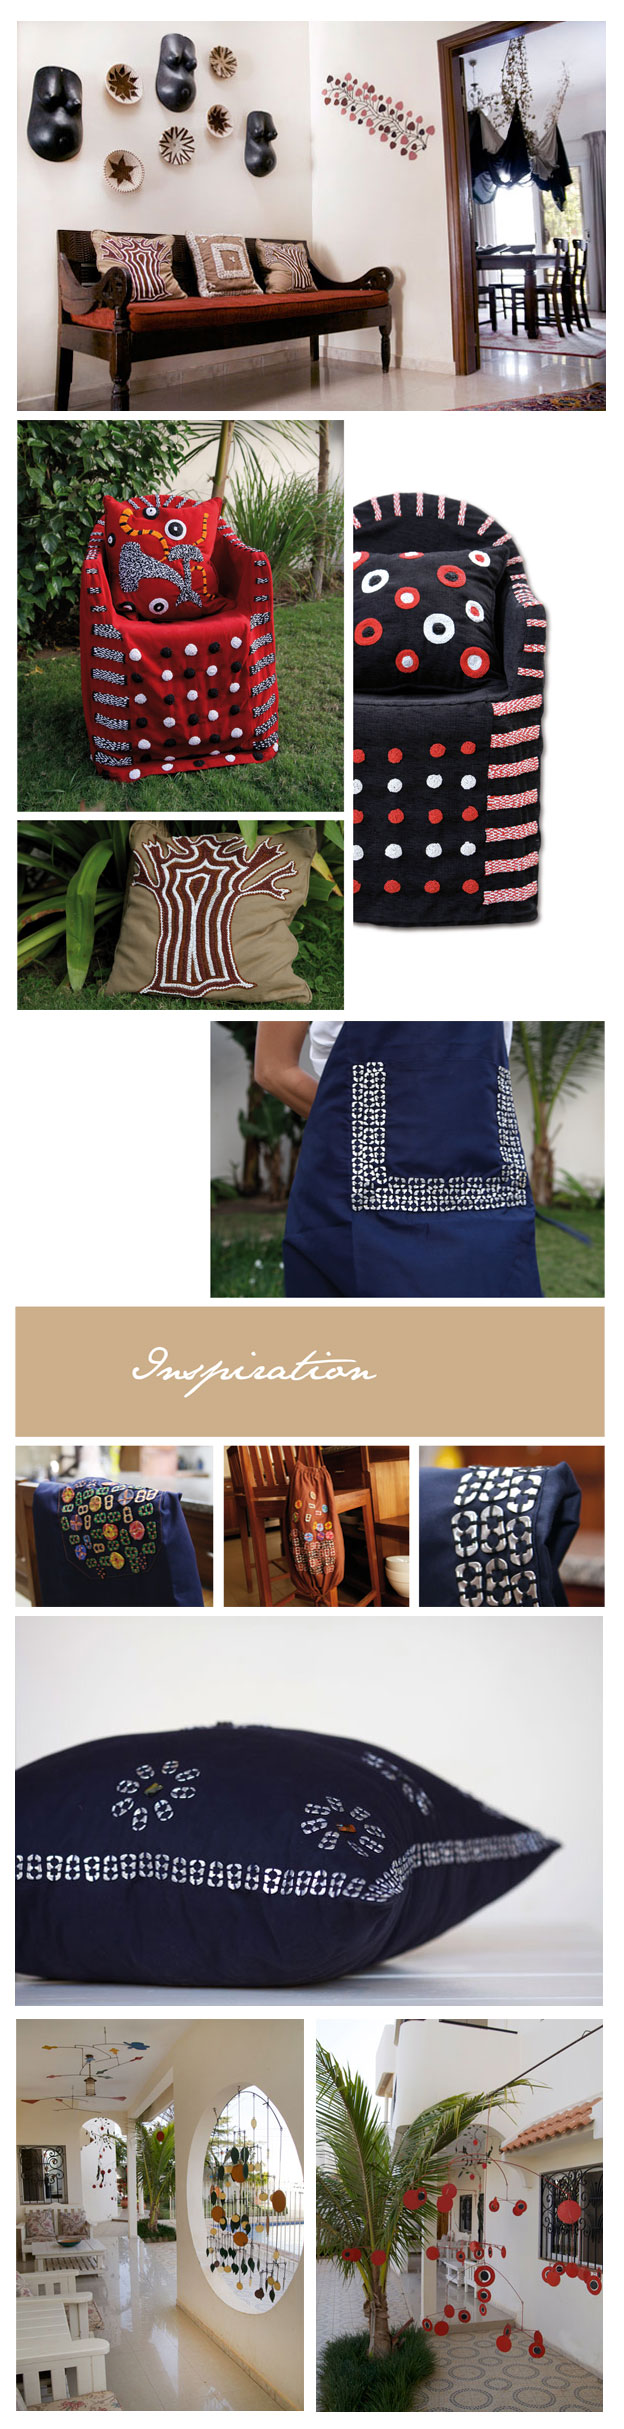 Loman Upcycling products